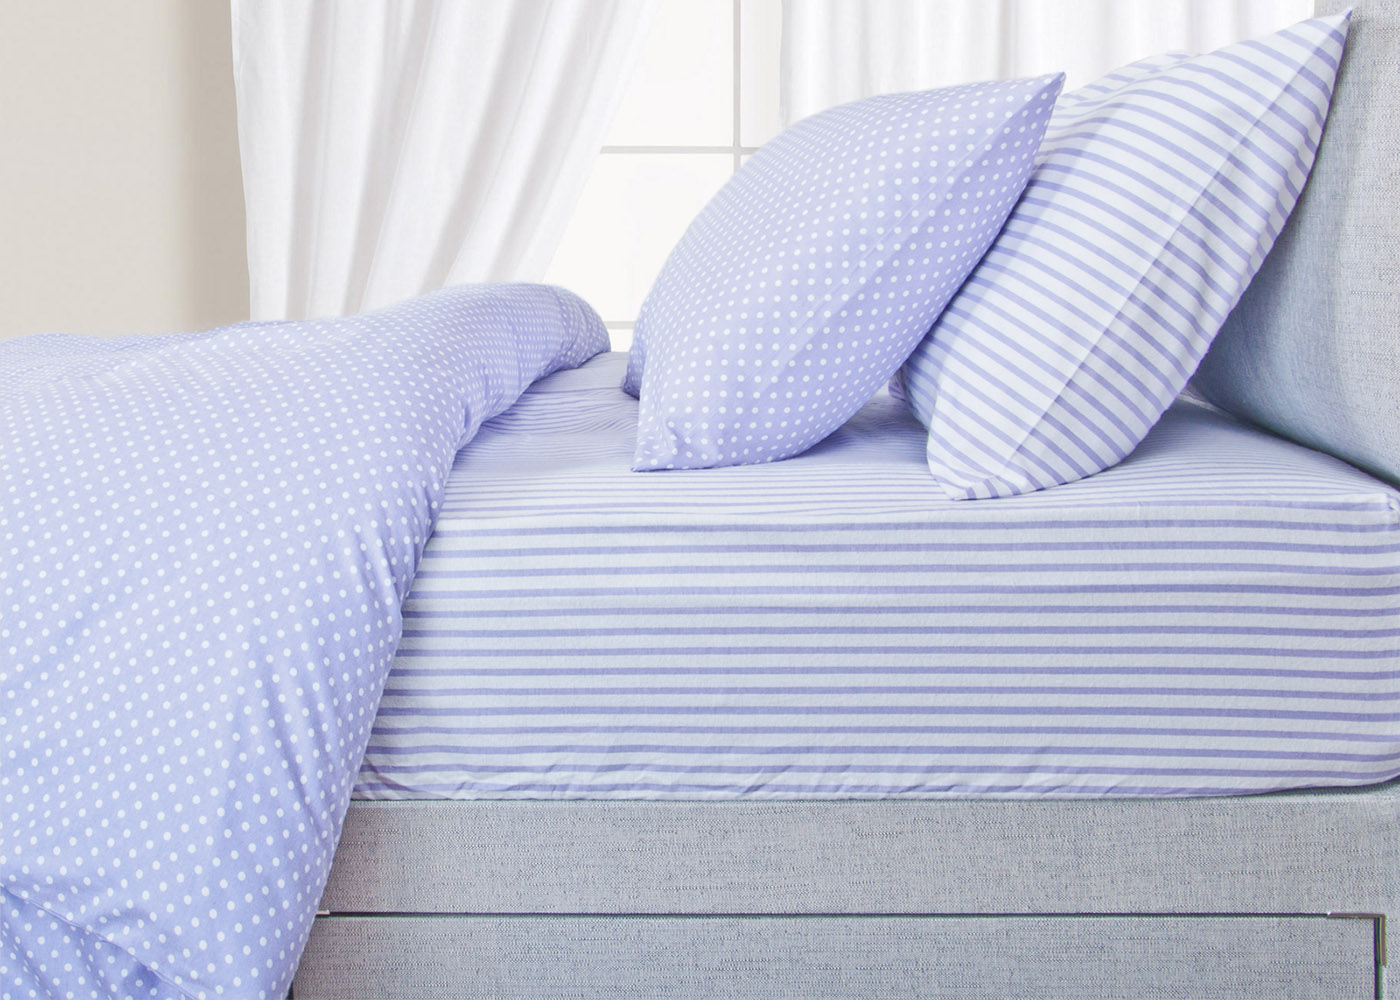 helena springfield  brushed cotton bedding in lilac and blue  - helena springfield  brushed cotton bedding in lilac and blue